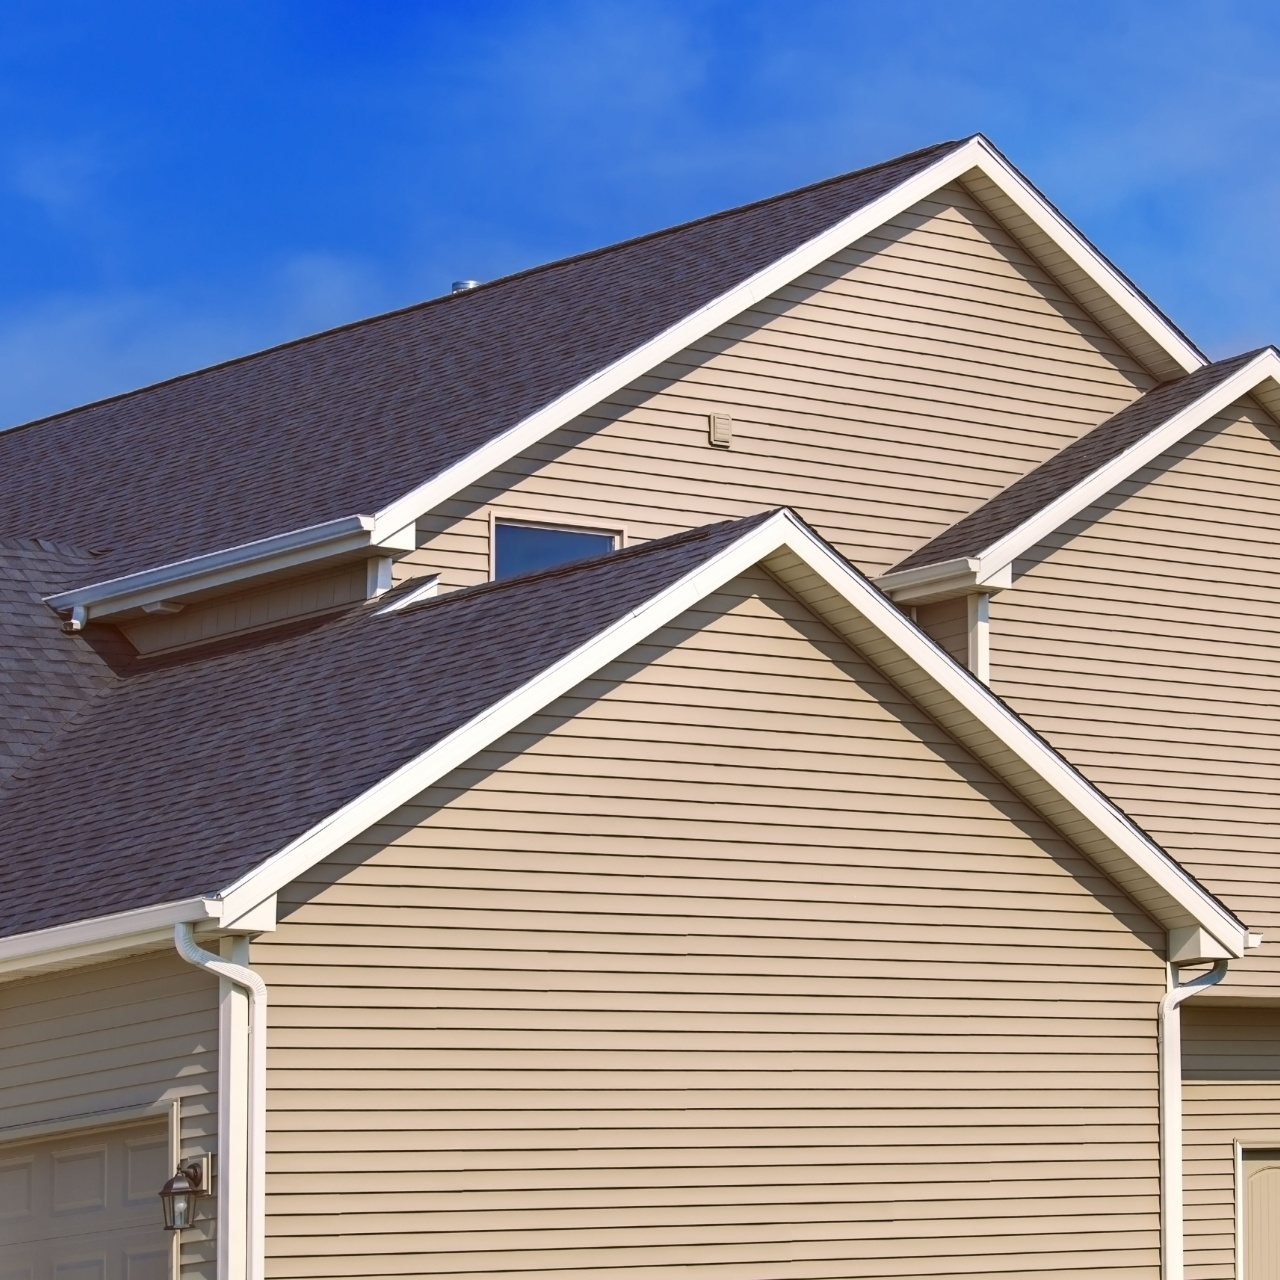 install outdoor outlet vinyl siding the seven deadly sins of vinyl house siding from install outdoor outlet vinyl siding